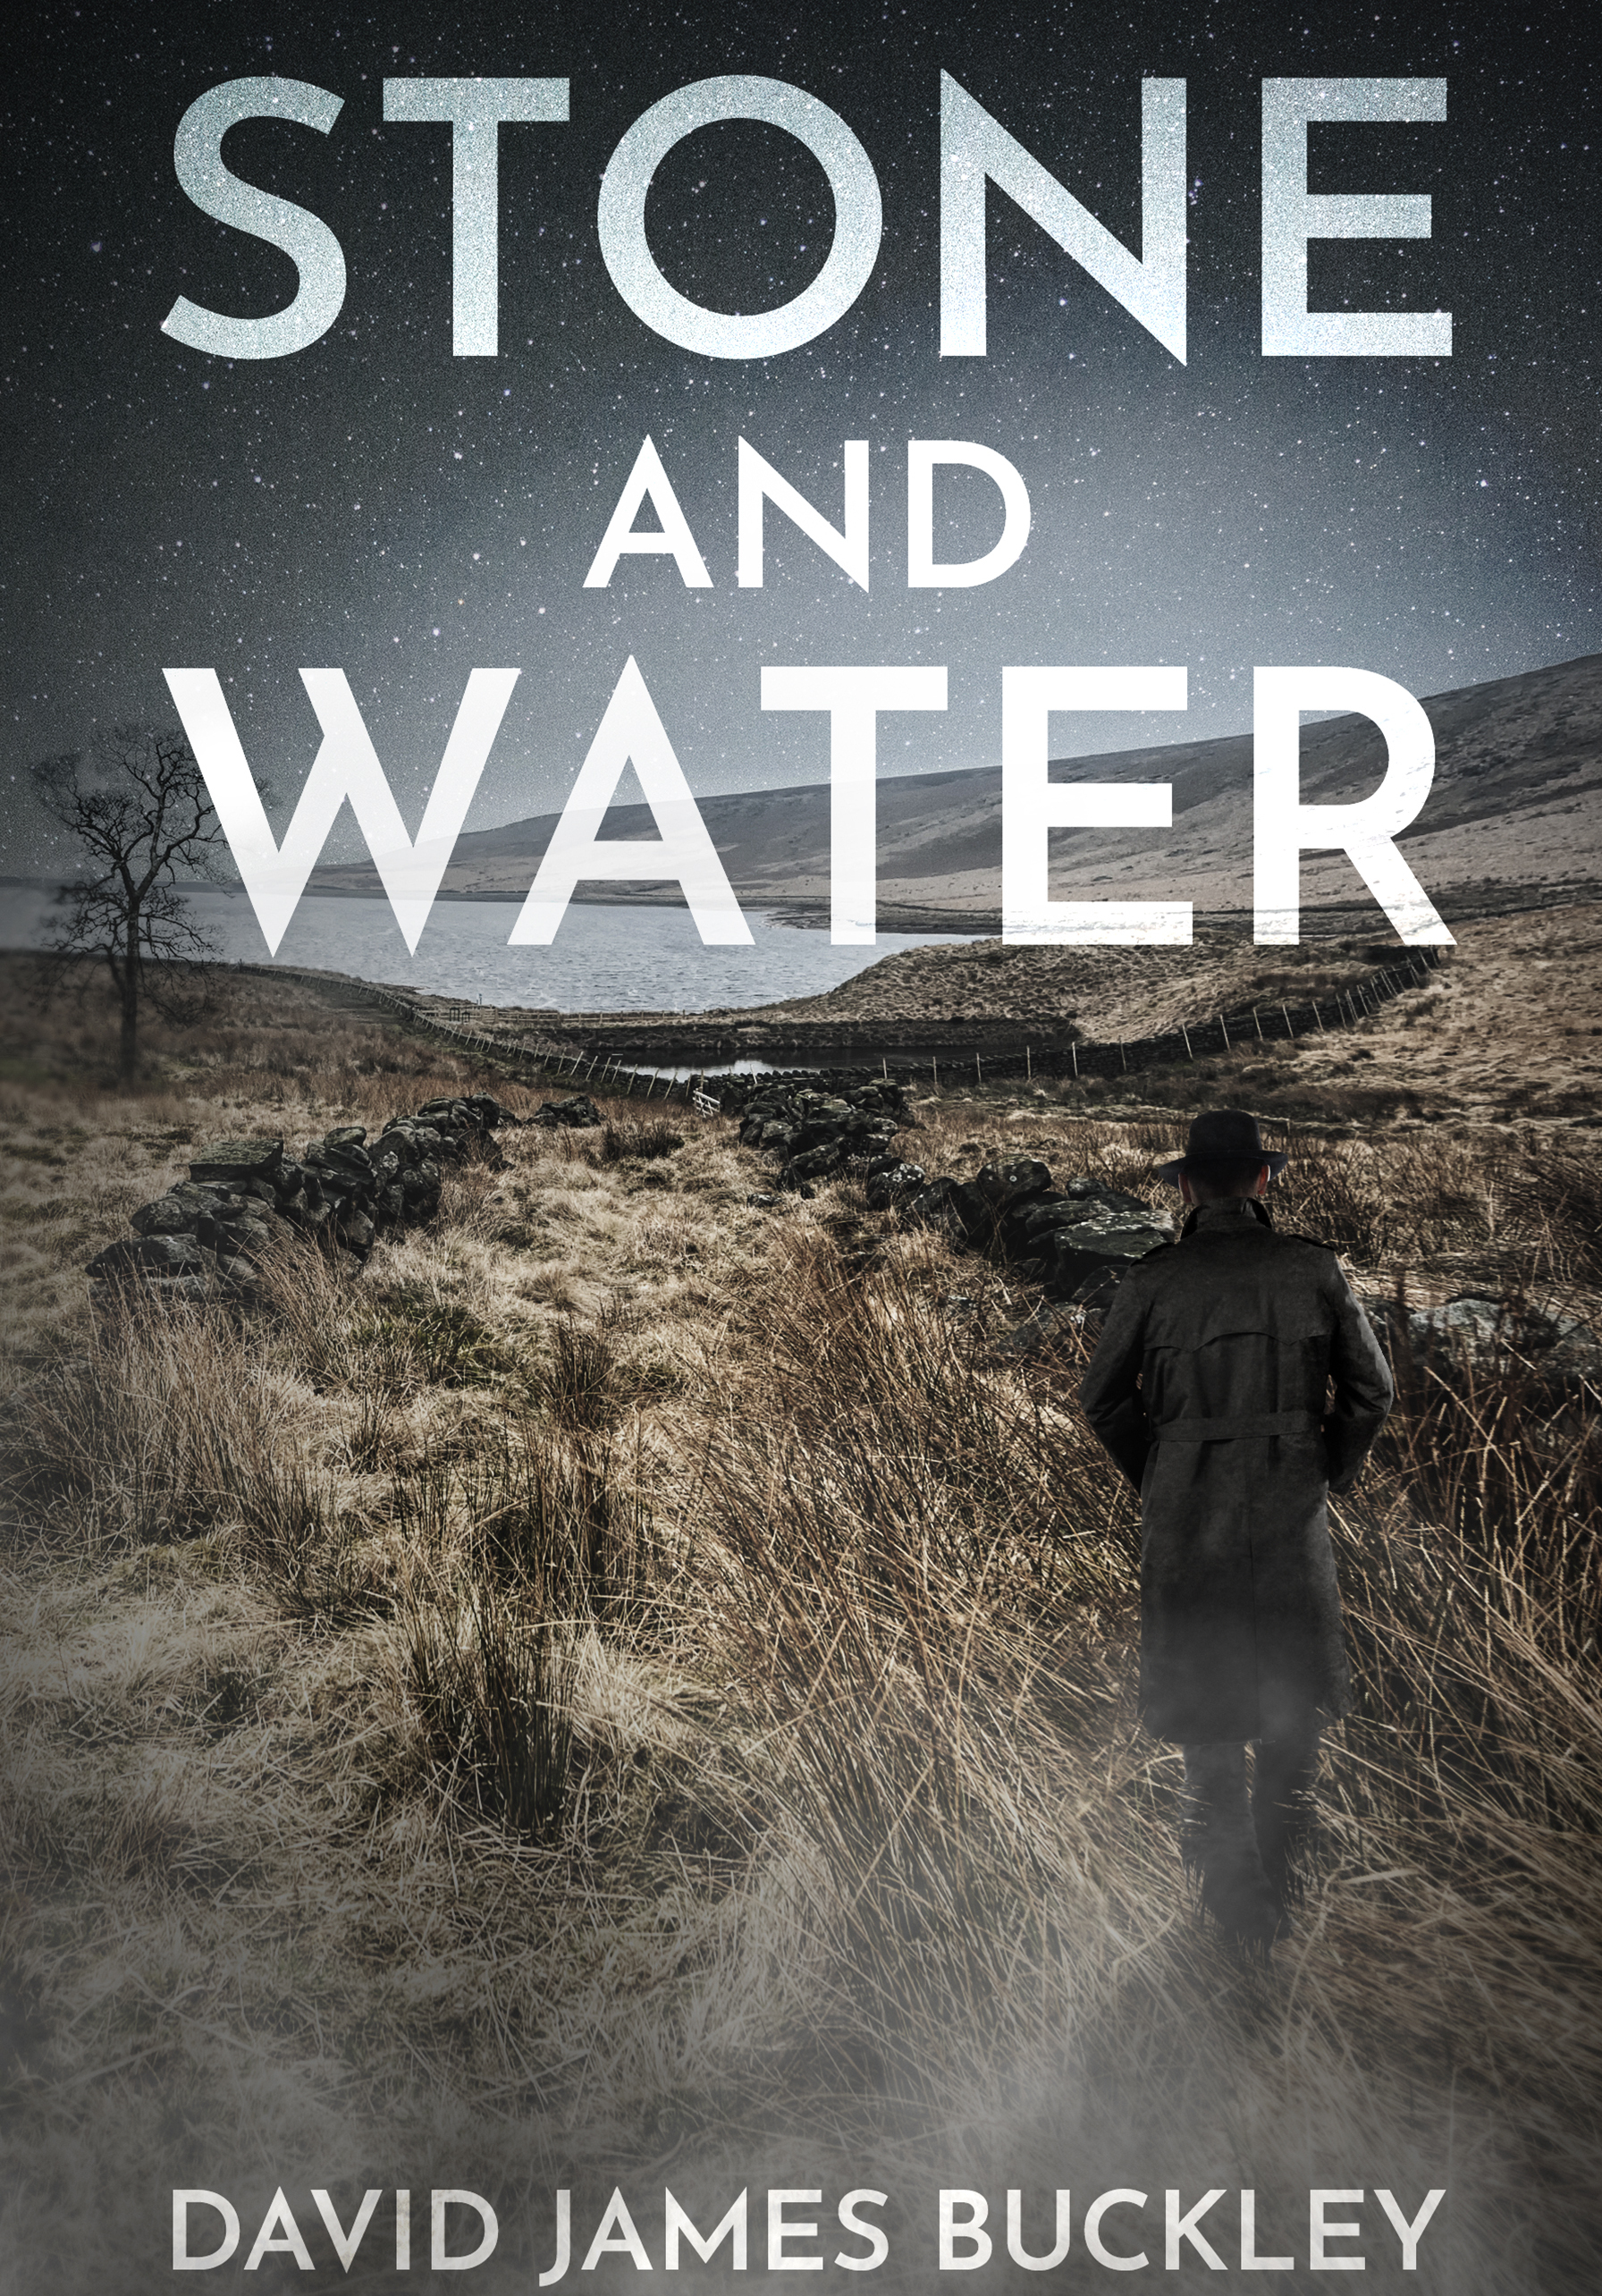 'Stone and Water' by David James Buckley